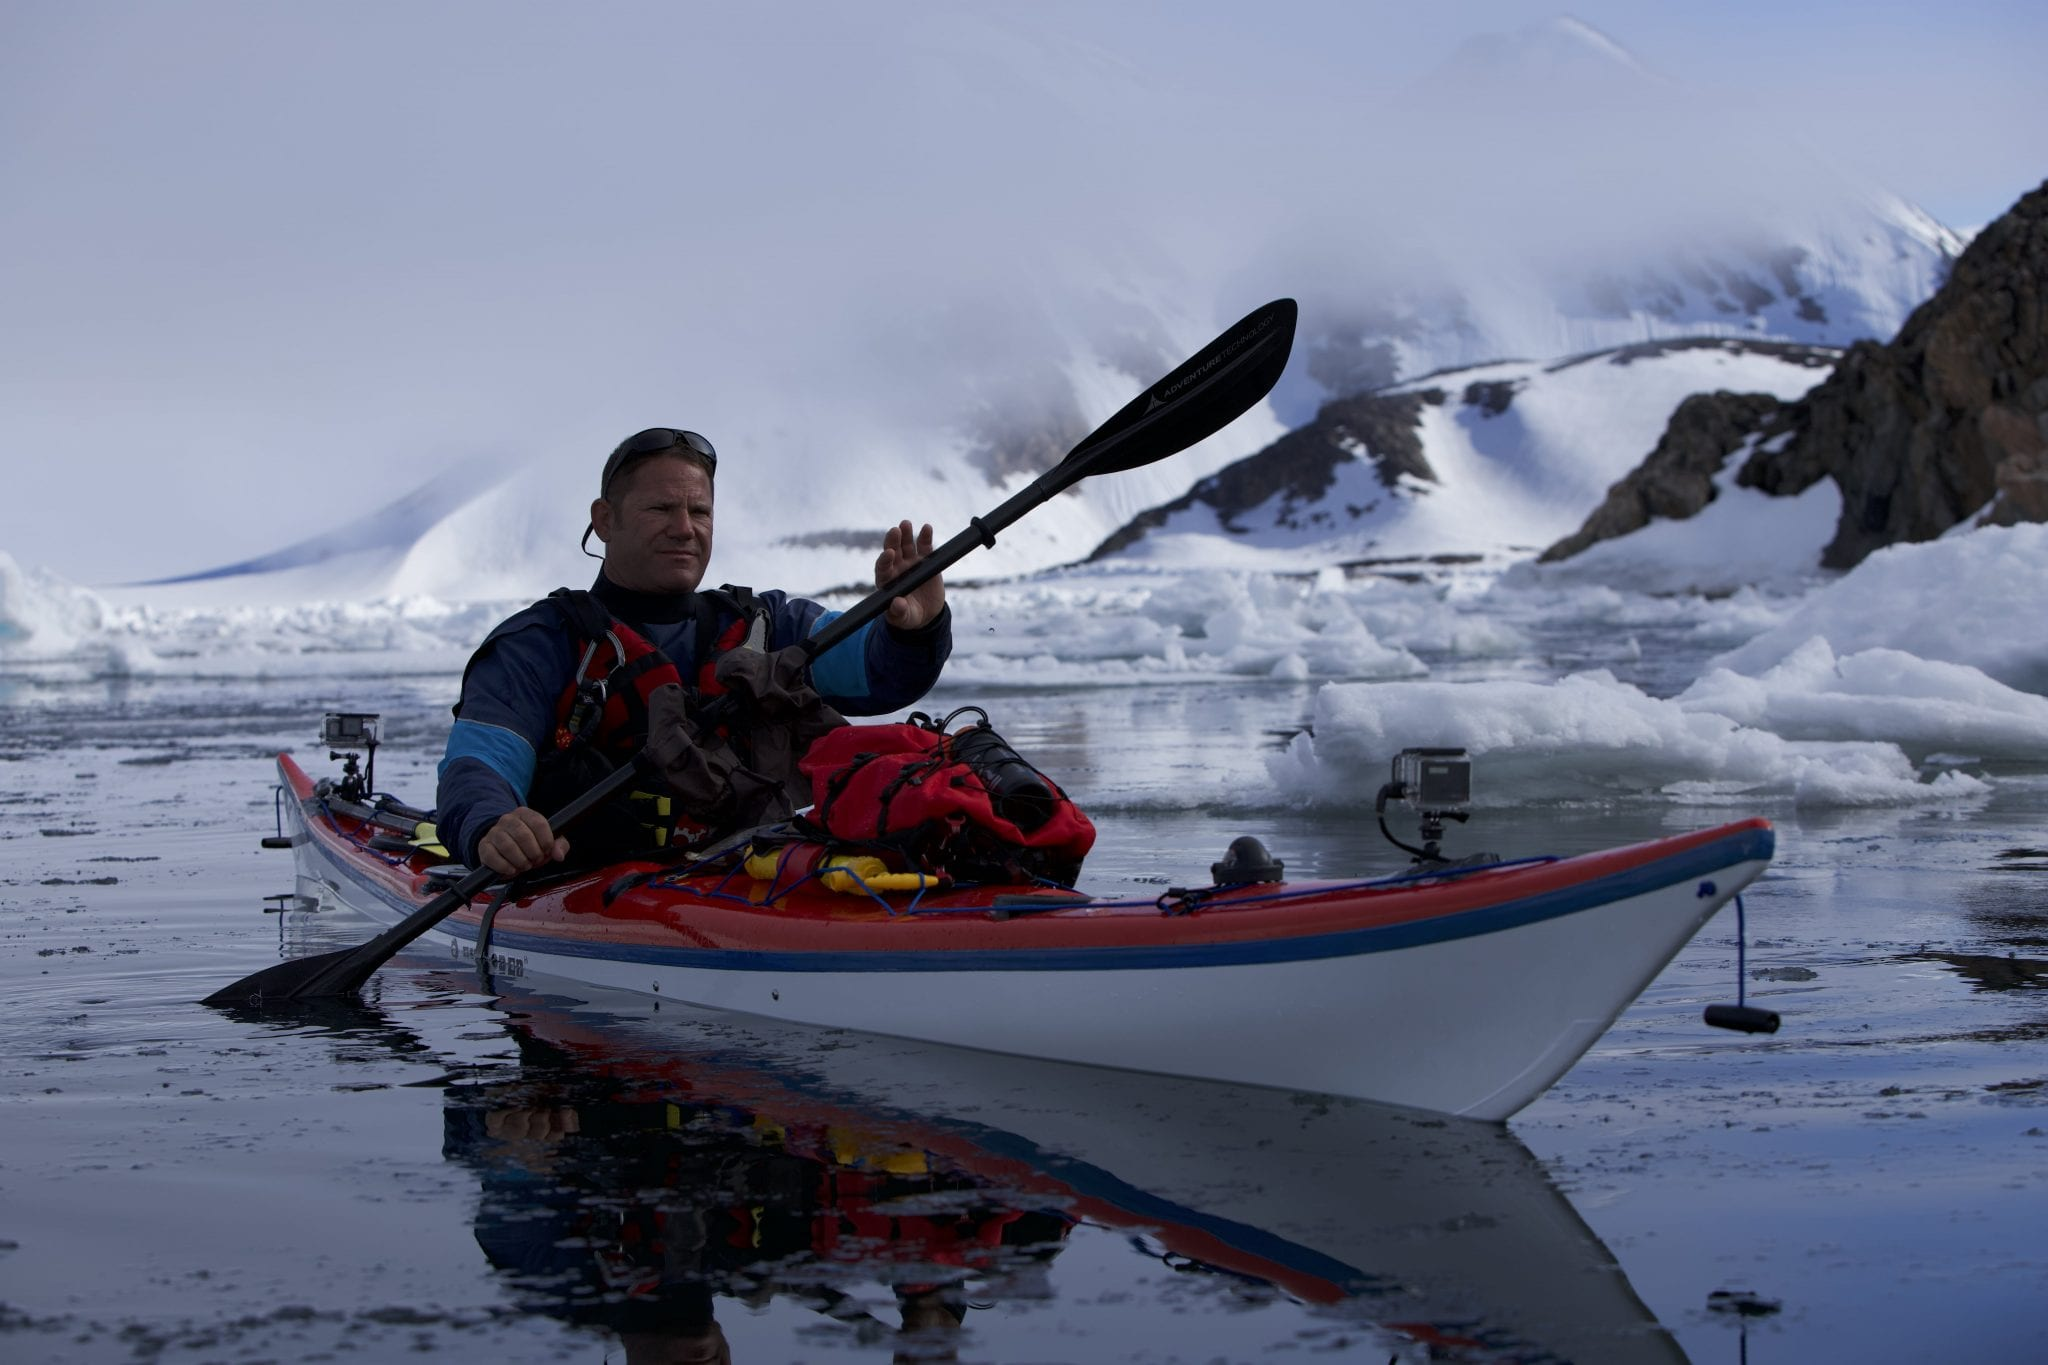 expedition with steve backshall pbs program